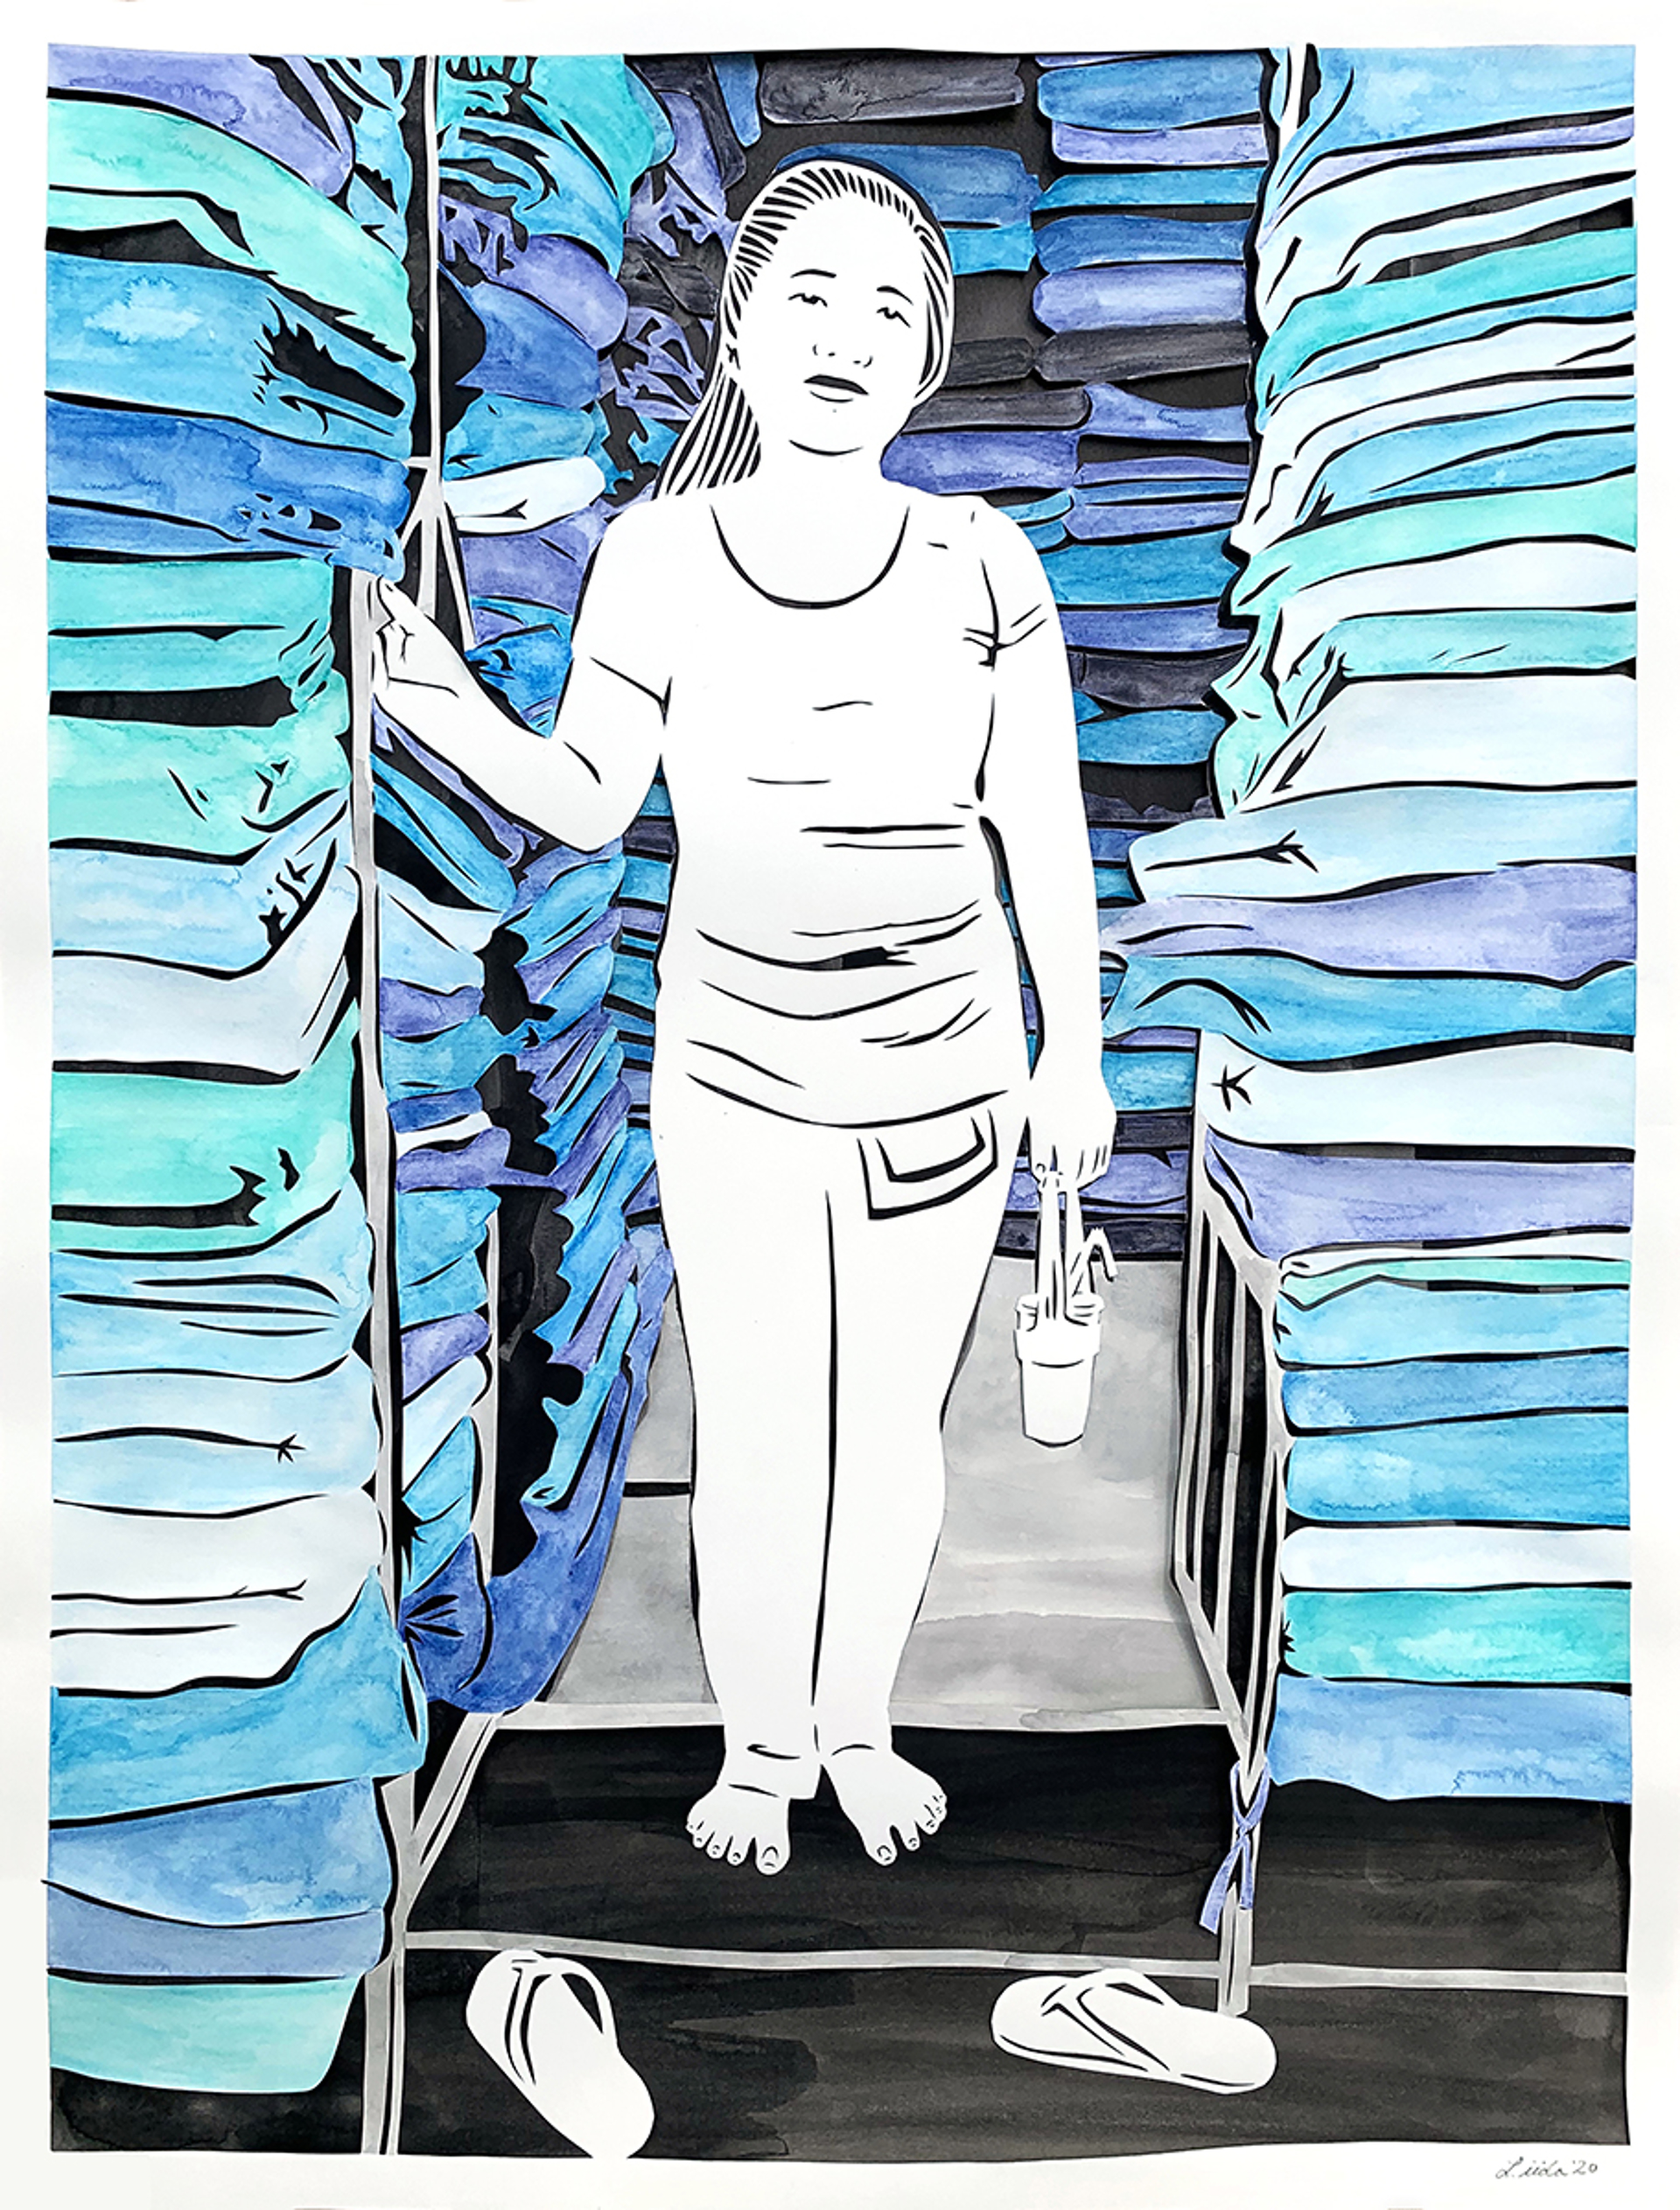 22. Thirsty: The Habits of a Phnom Penh Fabric Seller by Lauren Iida